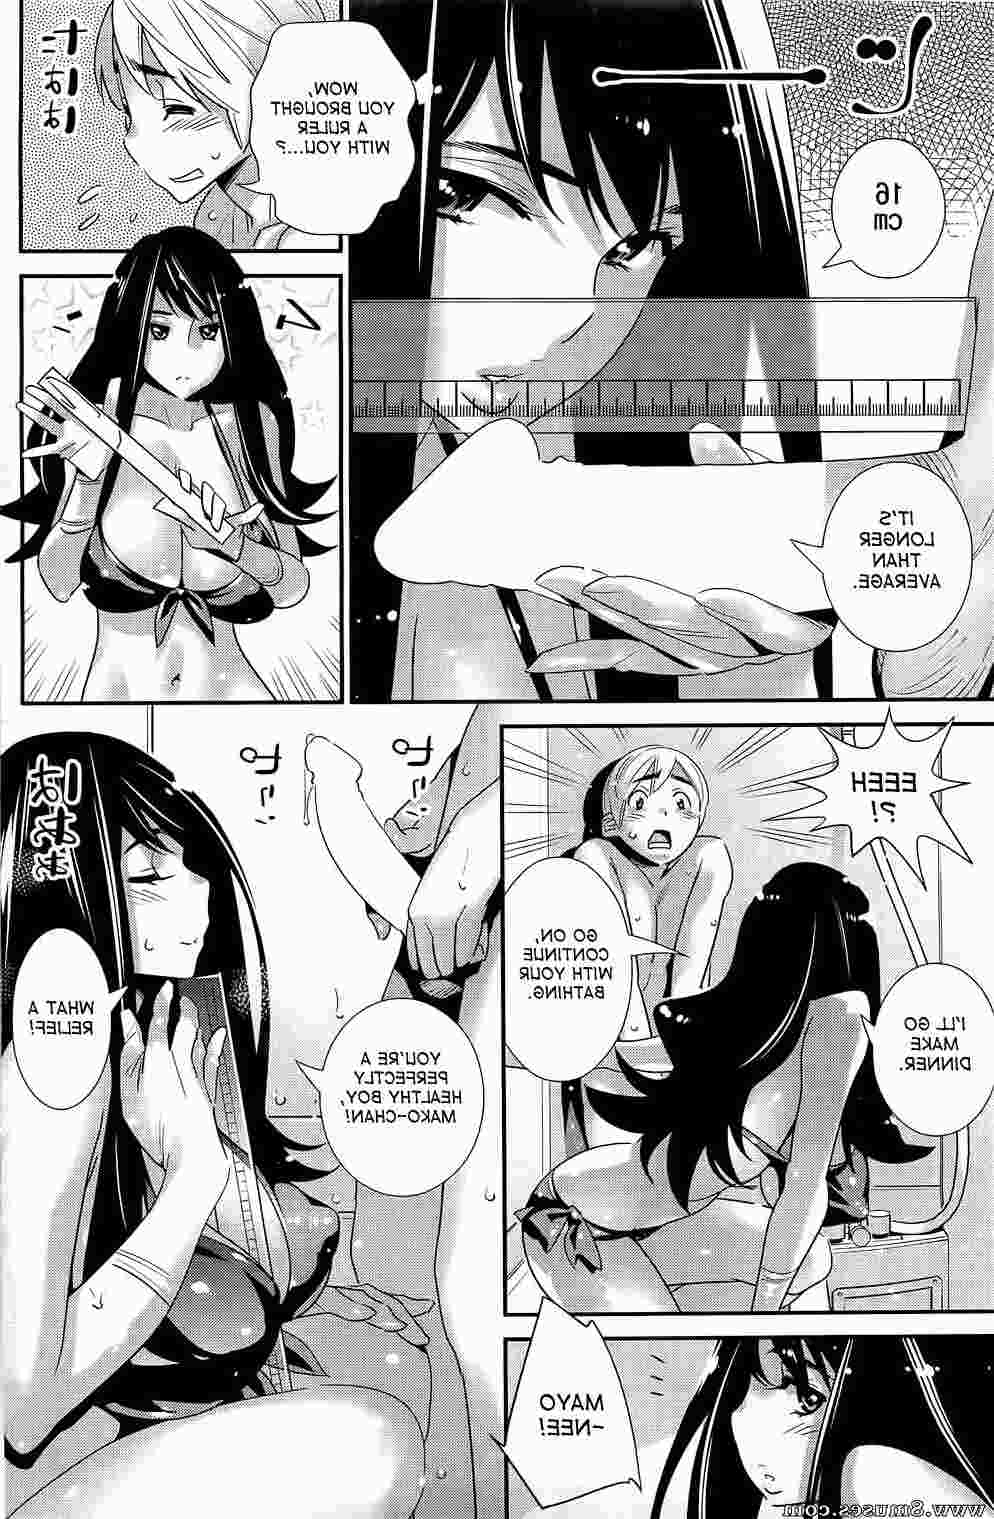 Hentai-and-Manga-English/Katsura-Yoshihiro/The-Ghost-Behind-My-Back The_Ghost_Behind_My_Back__8muses_-_Sex_and_Porn_Comics_11.jpg